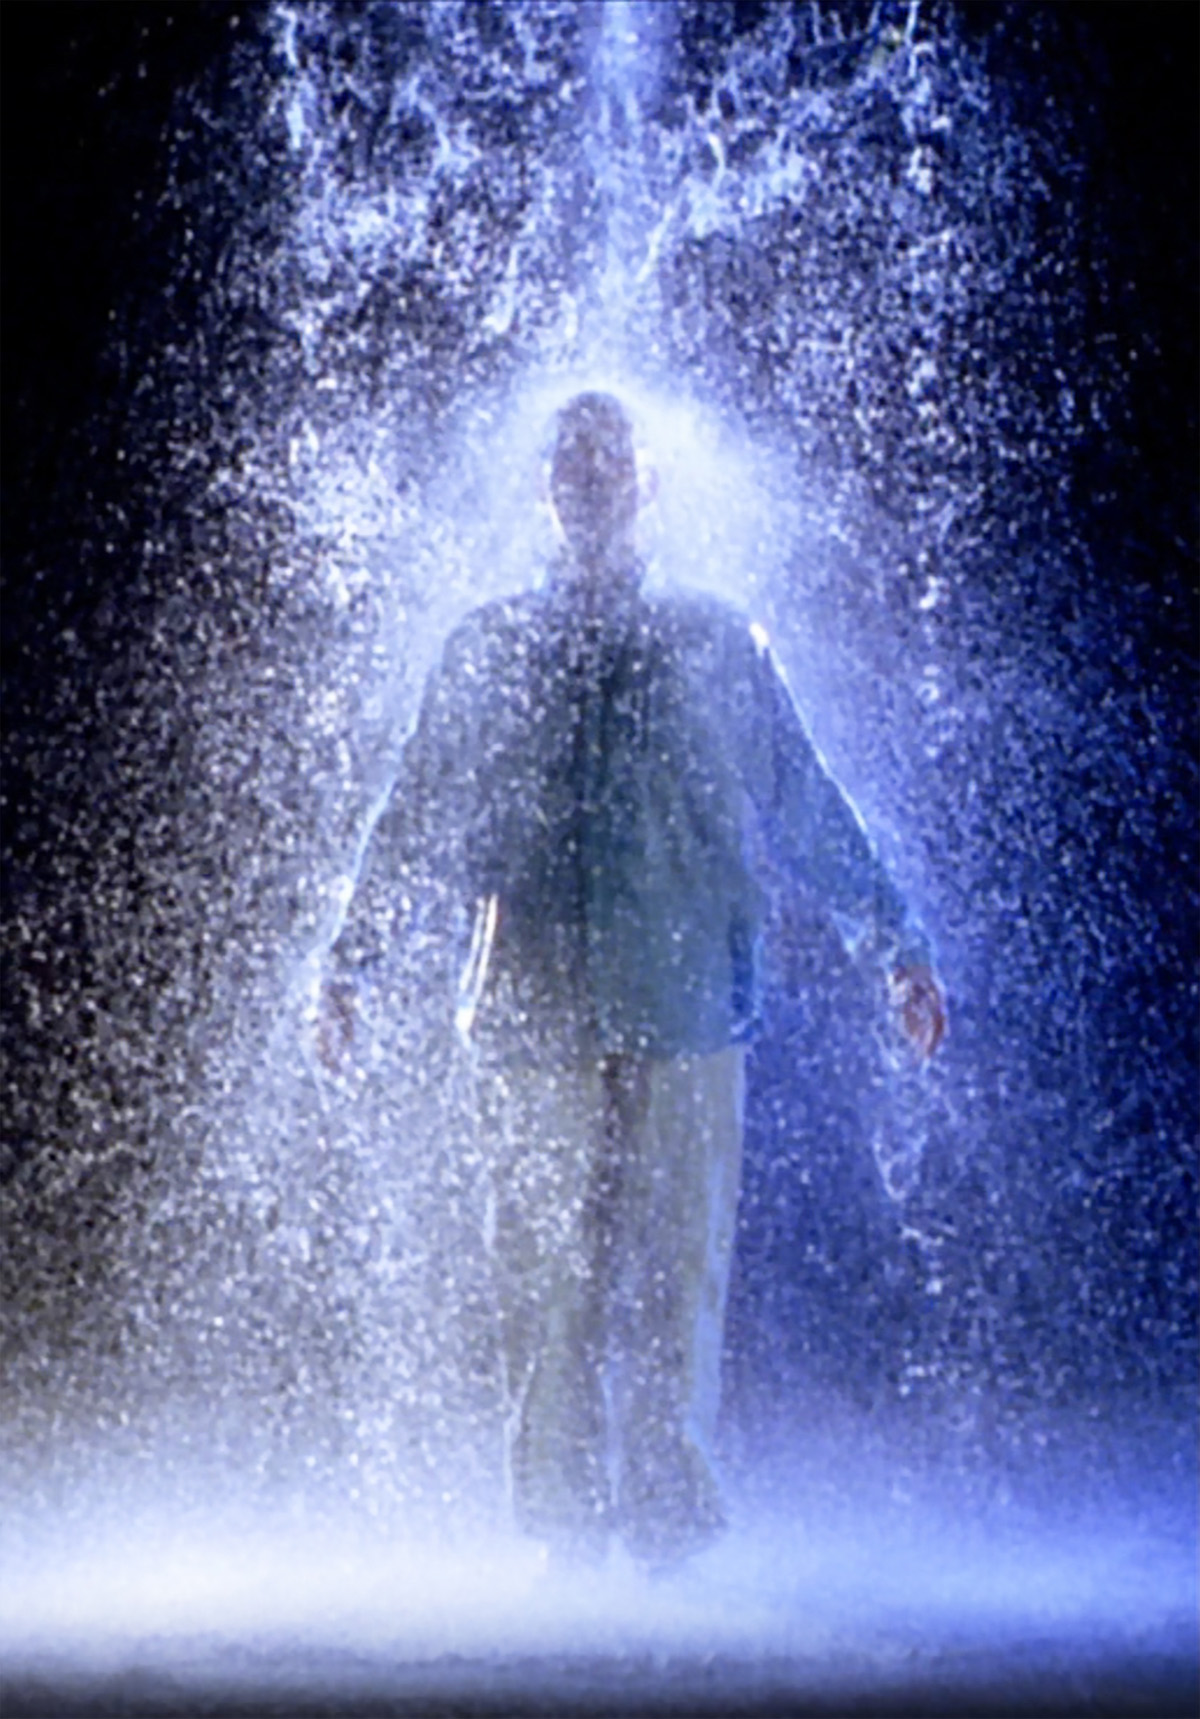 Bill Viola, The Crossing, 1996, 10'57''. Installazione video-audio. Interprete Phil Esposito. Courtesy Bill Viola Studio